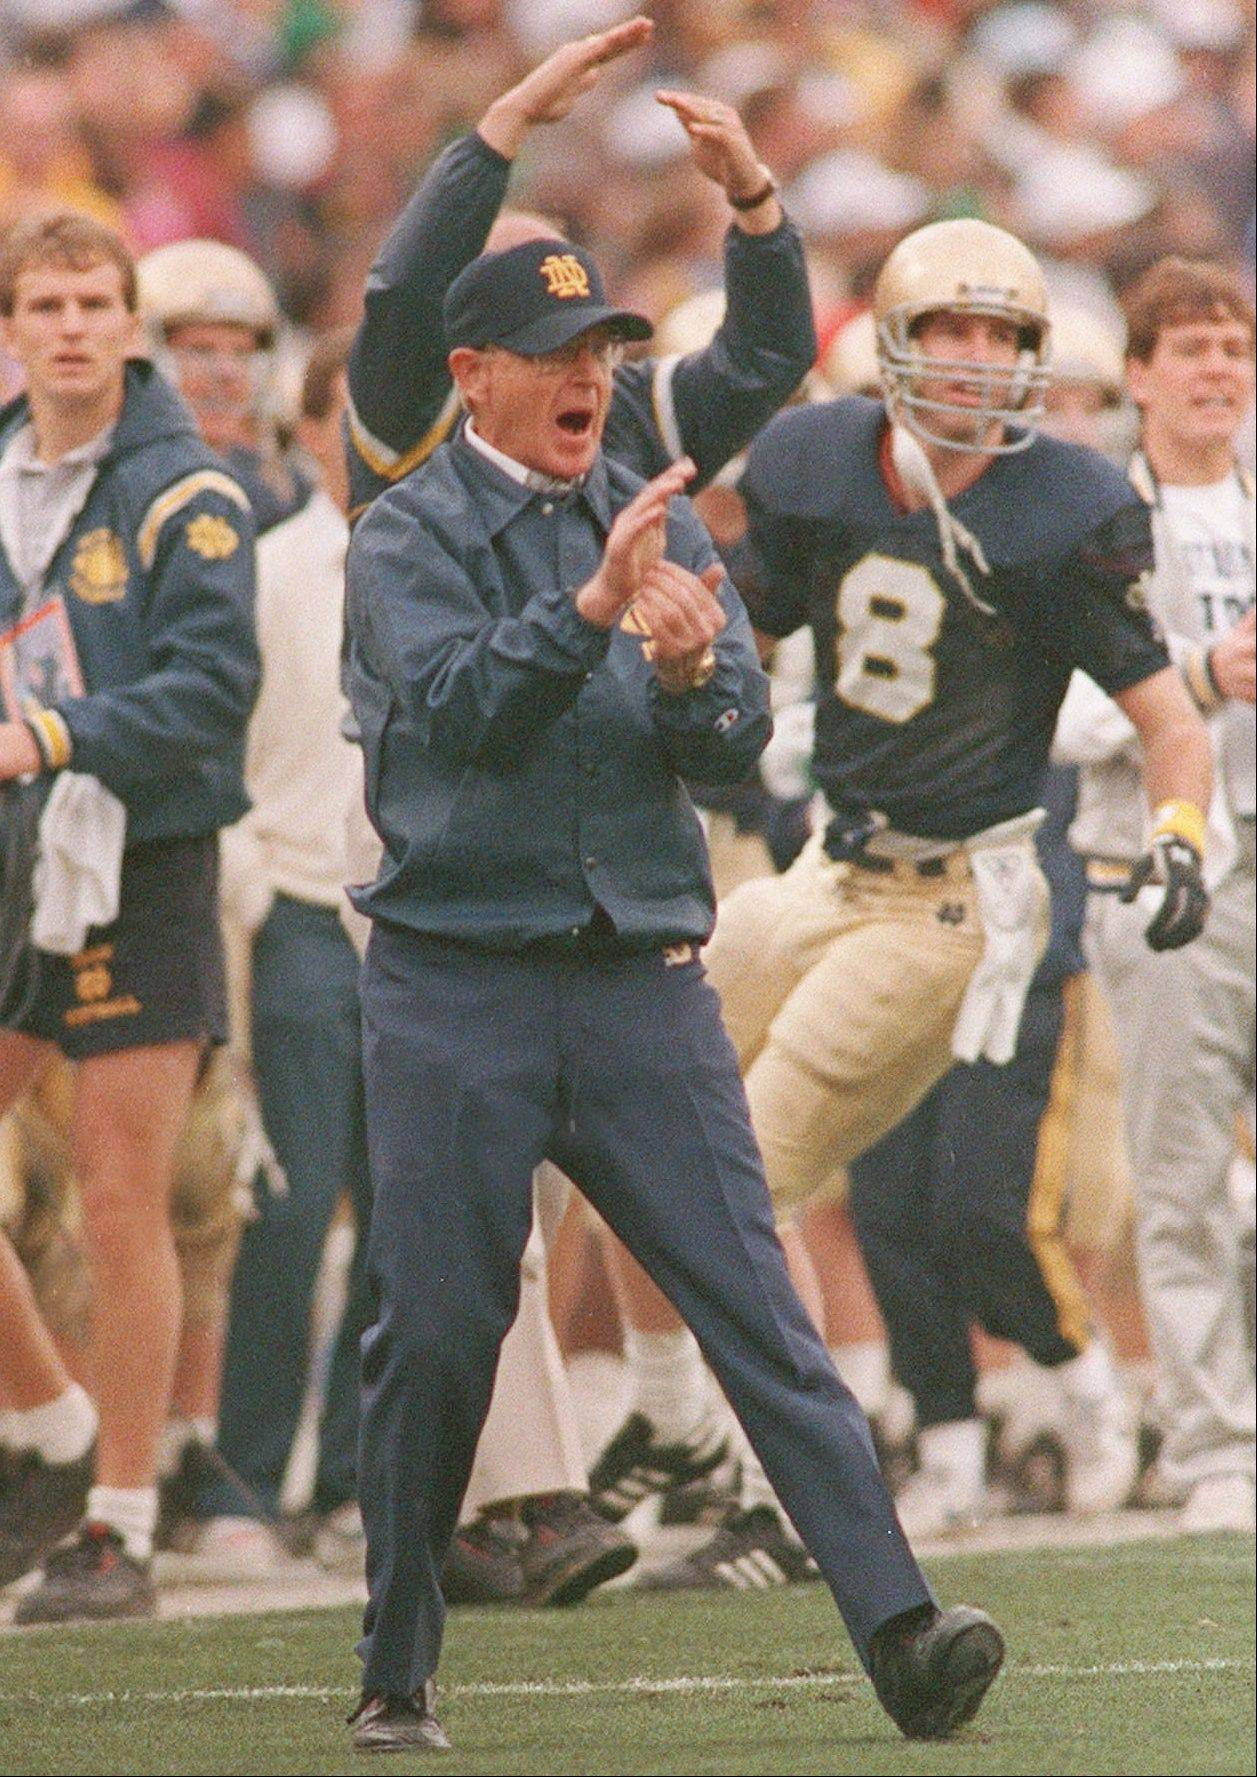 DH rewind: Looking back at ND's last title game bid